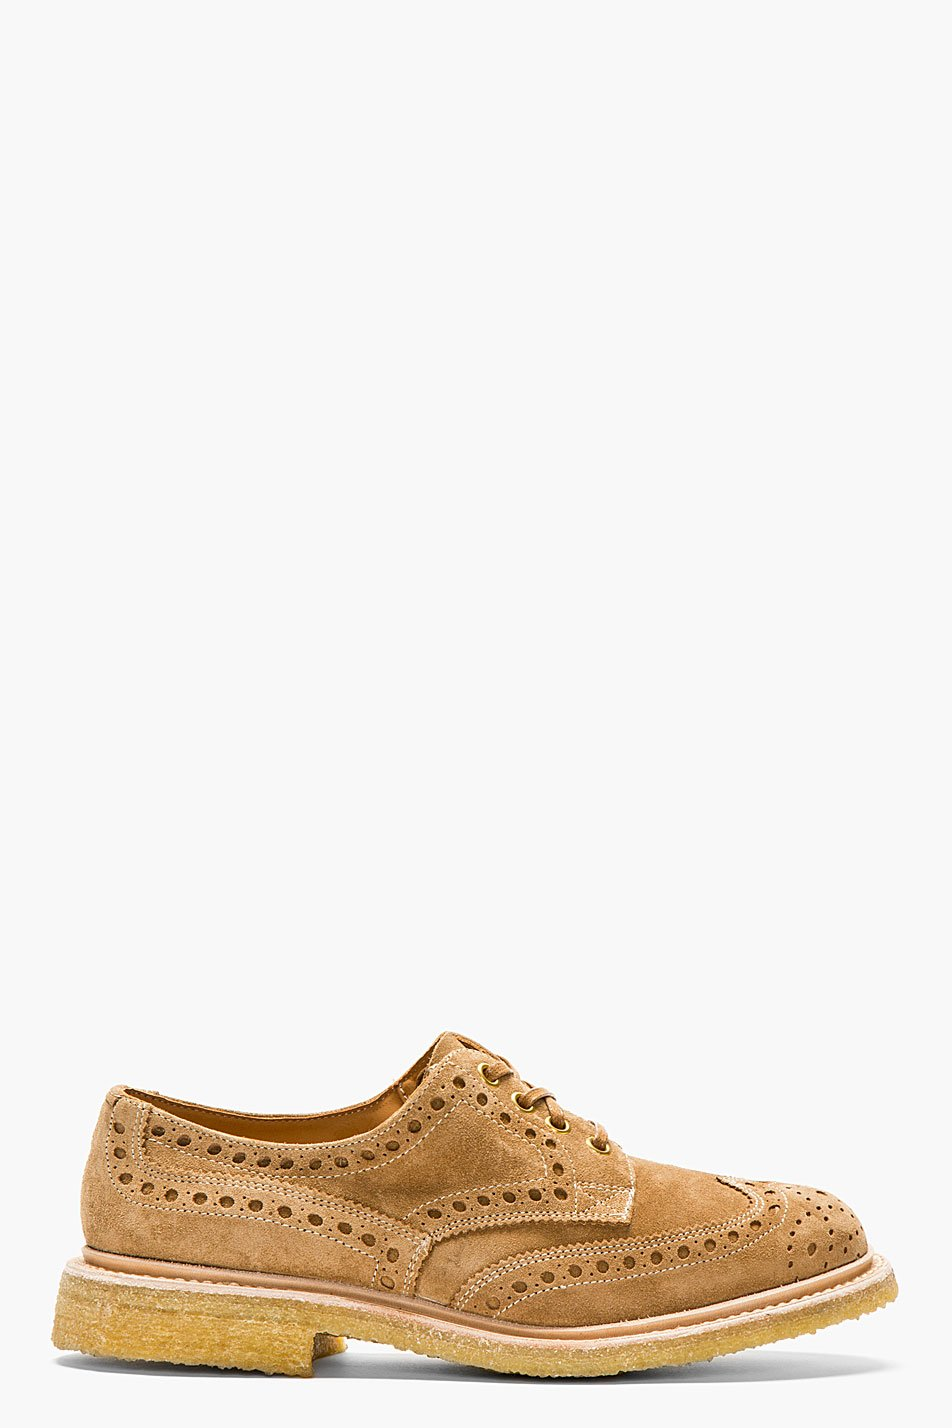 N.d.c. made by hand tan suede softy bourton brogues